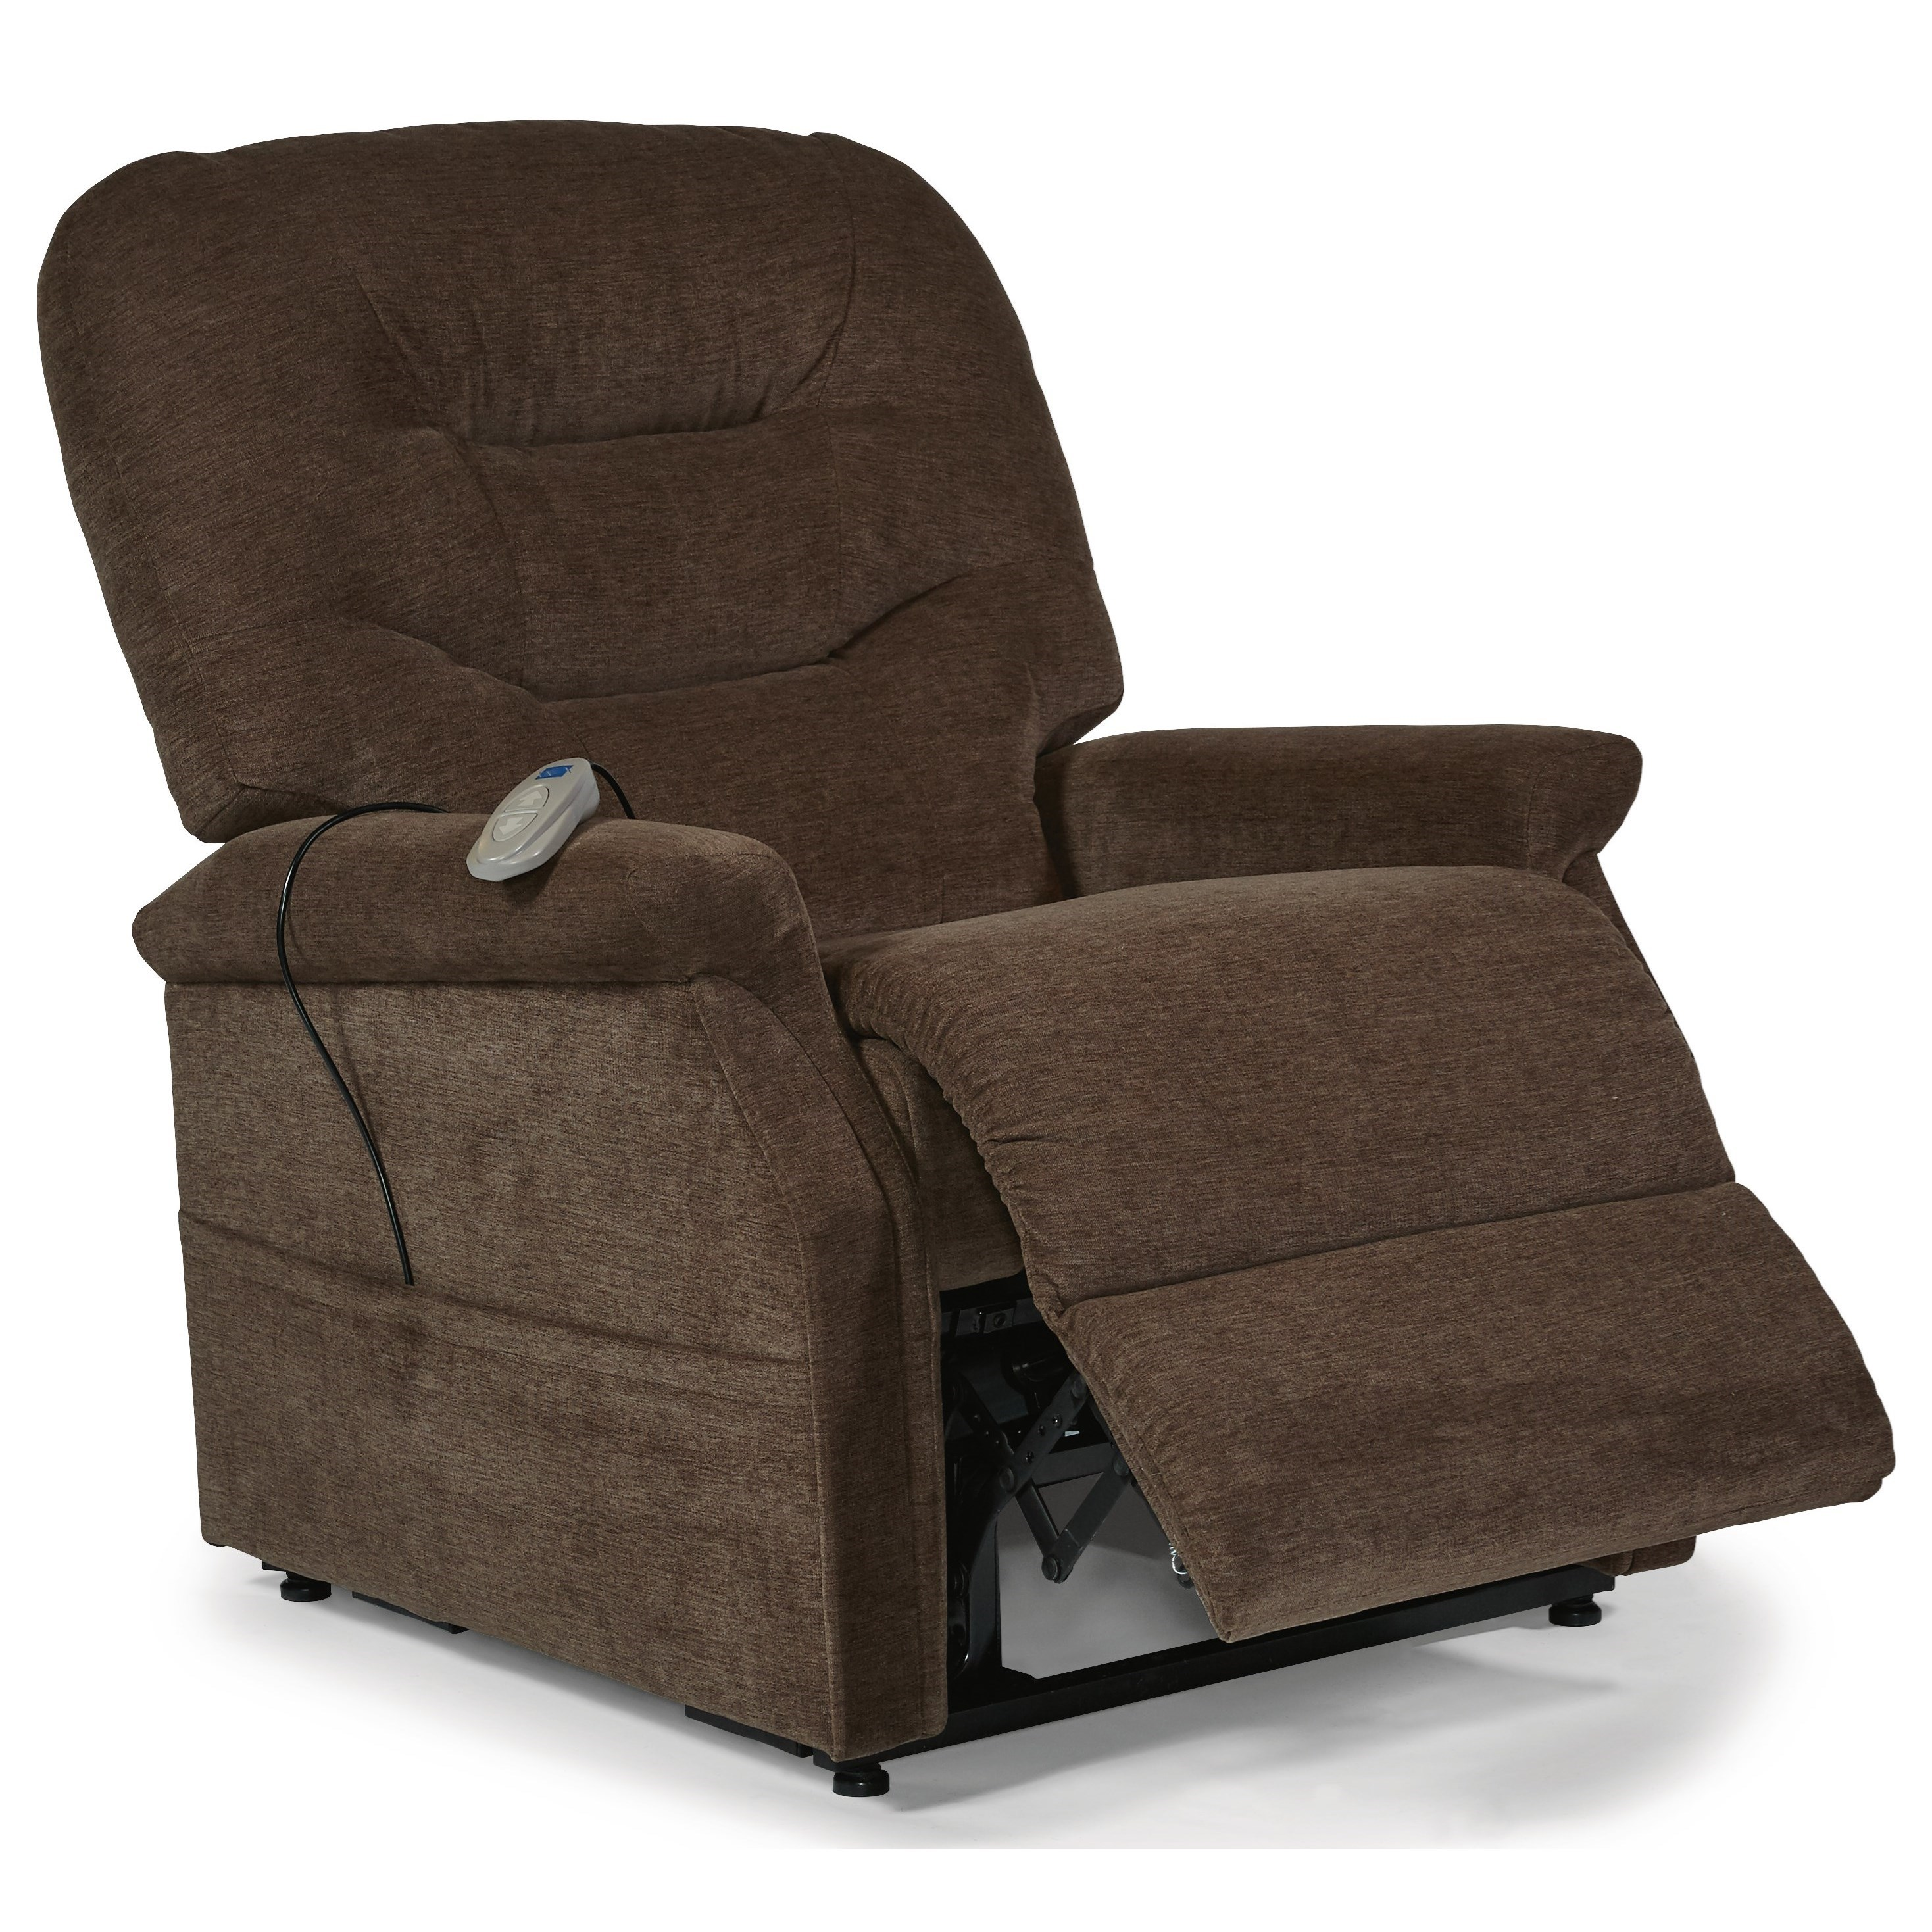 Flexsteel Latitudes Lift Chairs Lift Recliner w/ Right-Hand Cntrl - Item Number: 1910-55 02